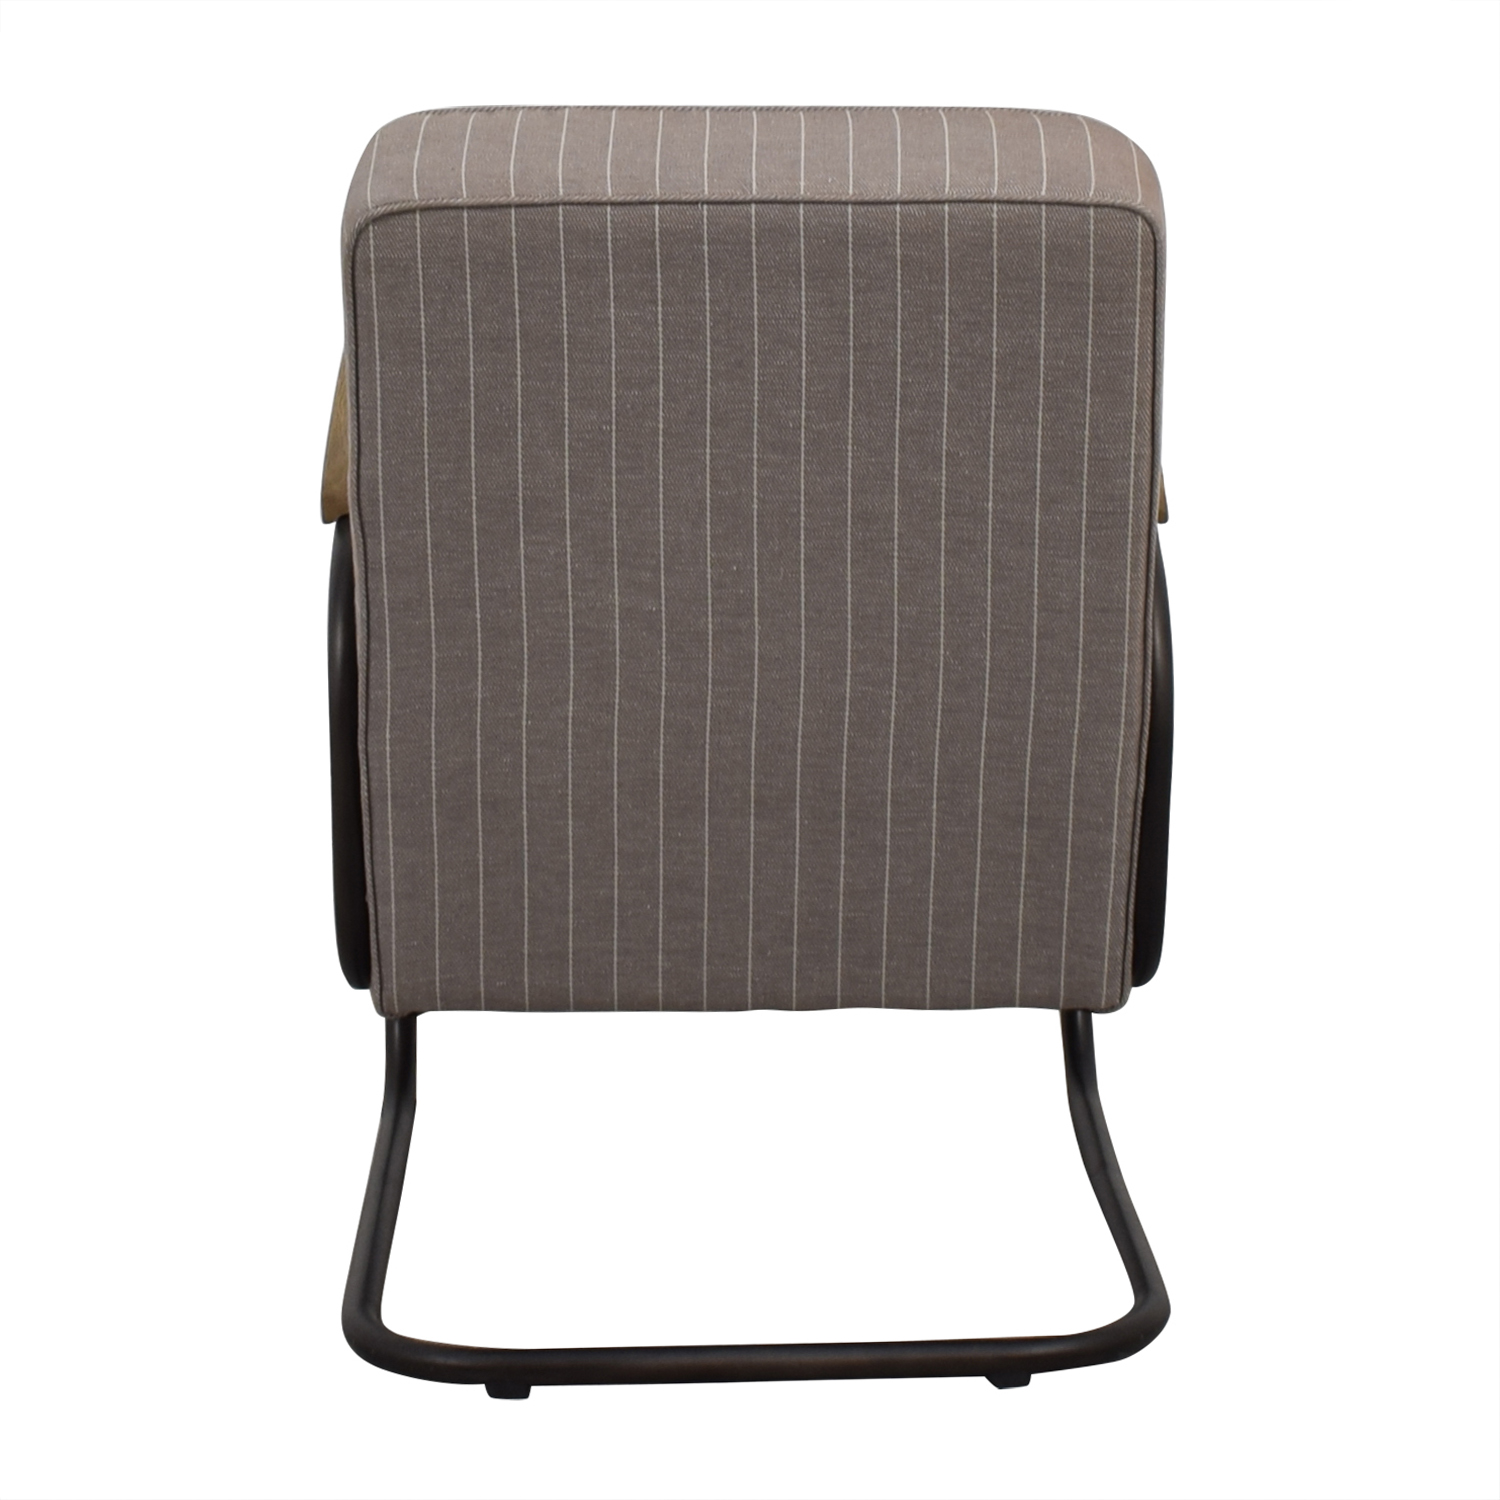 Beige and White Pinstripe Industrial Modern Arm Chair Accent Chairs